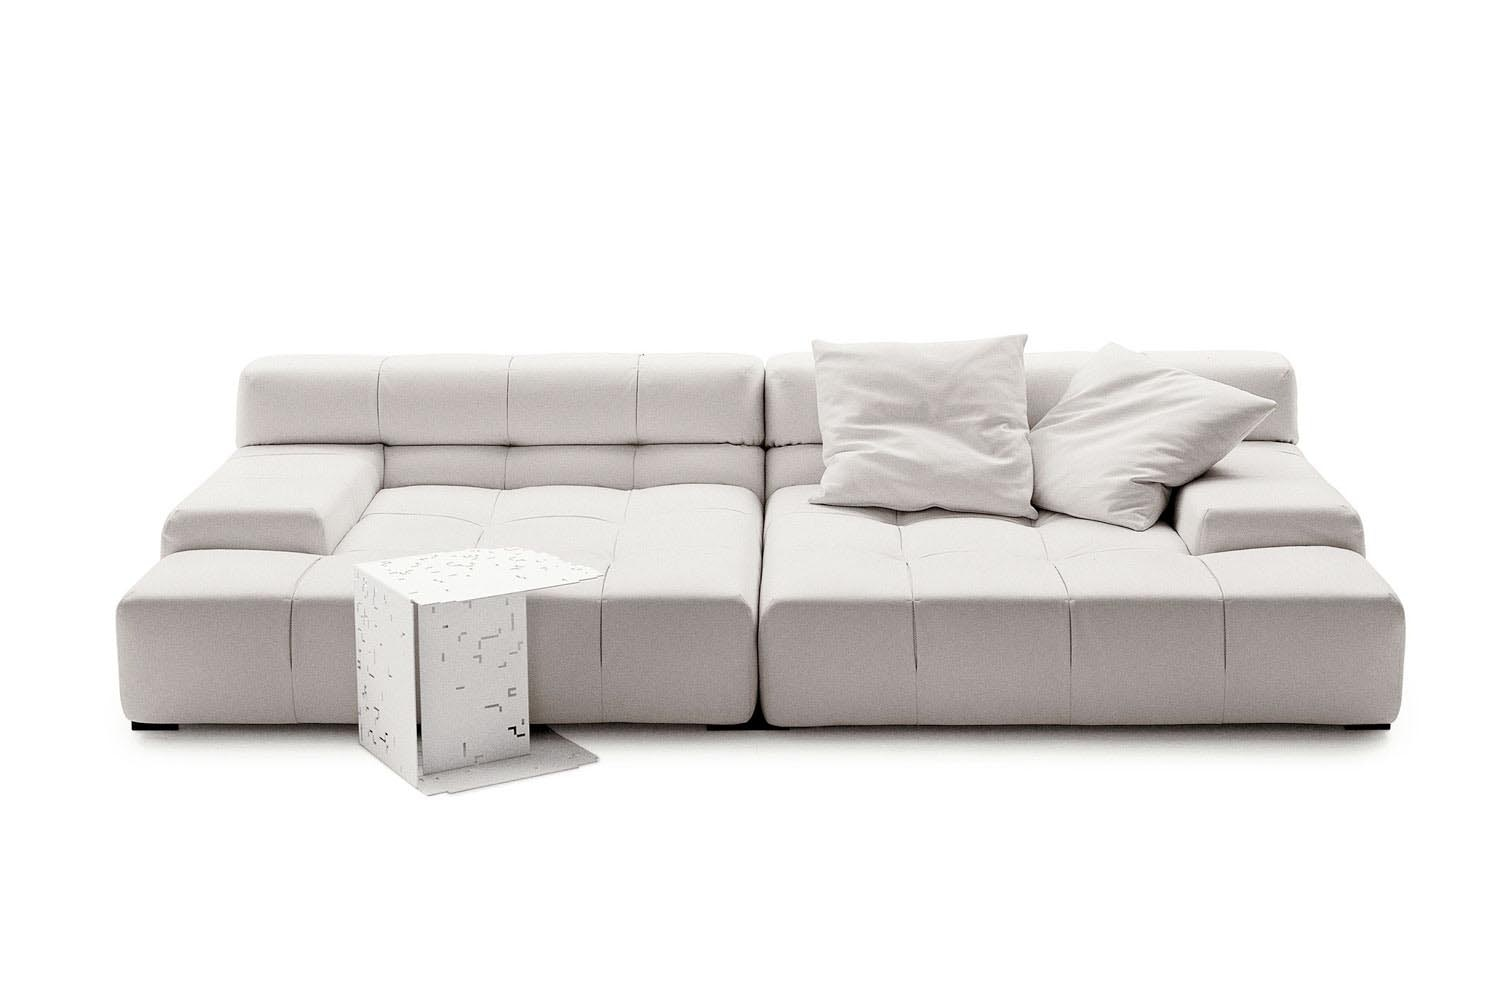 Tufty-Time Leather Sofa by Patricia Urquiola for B&B Italia